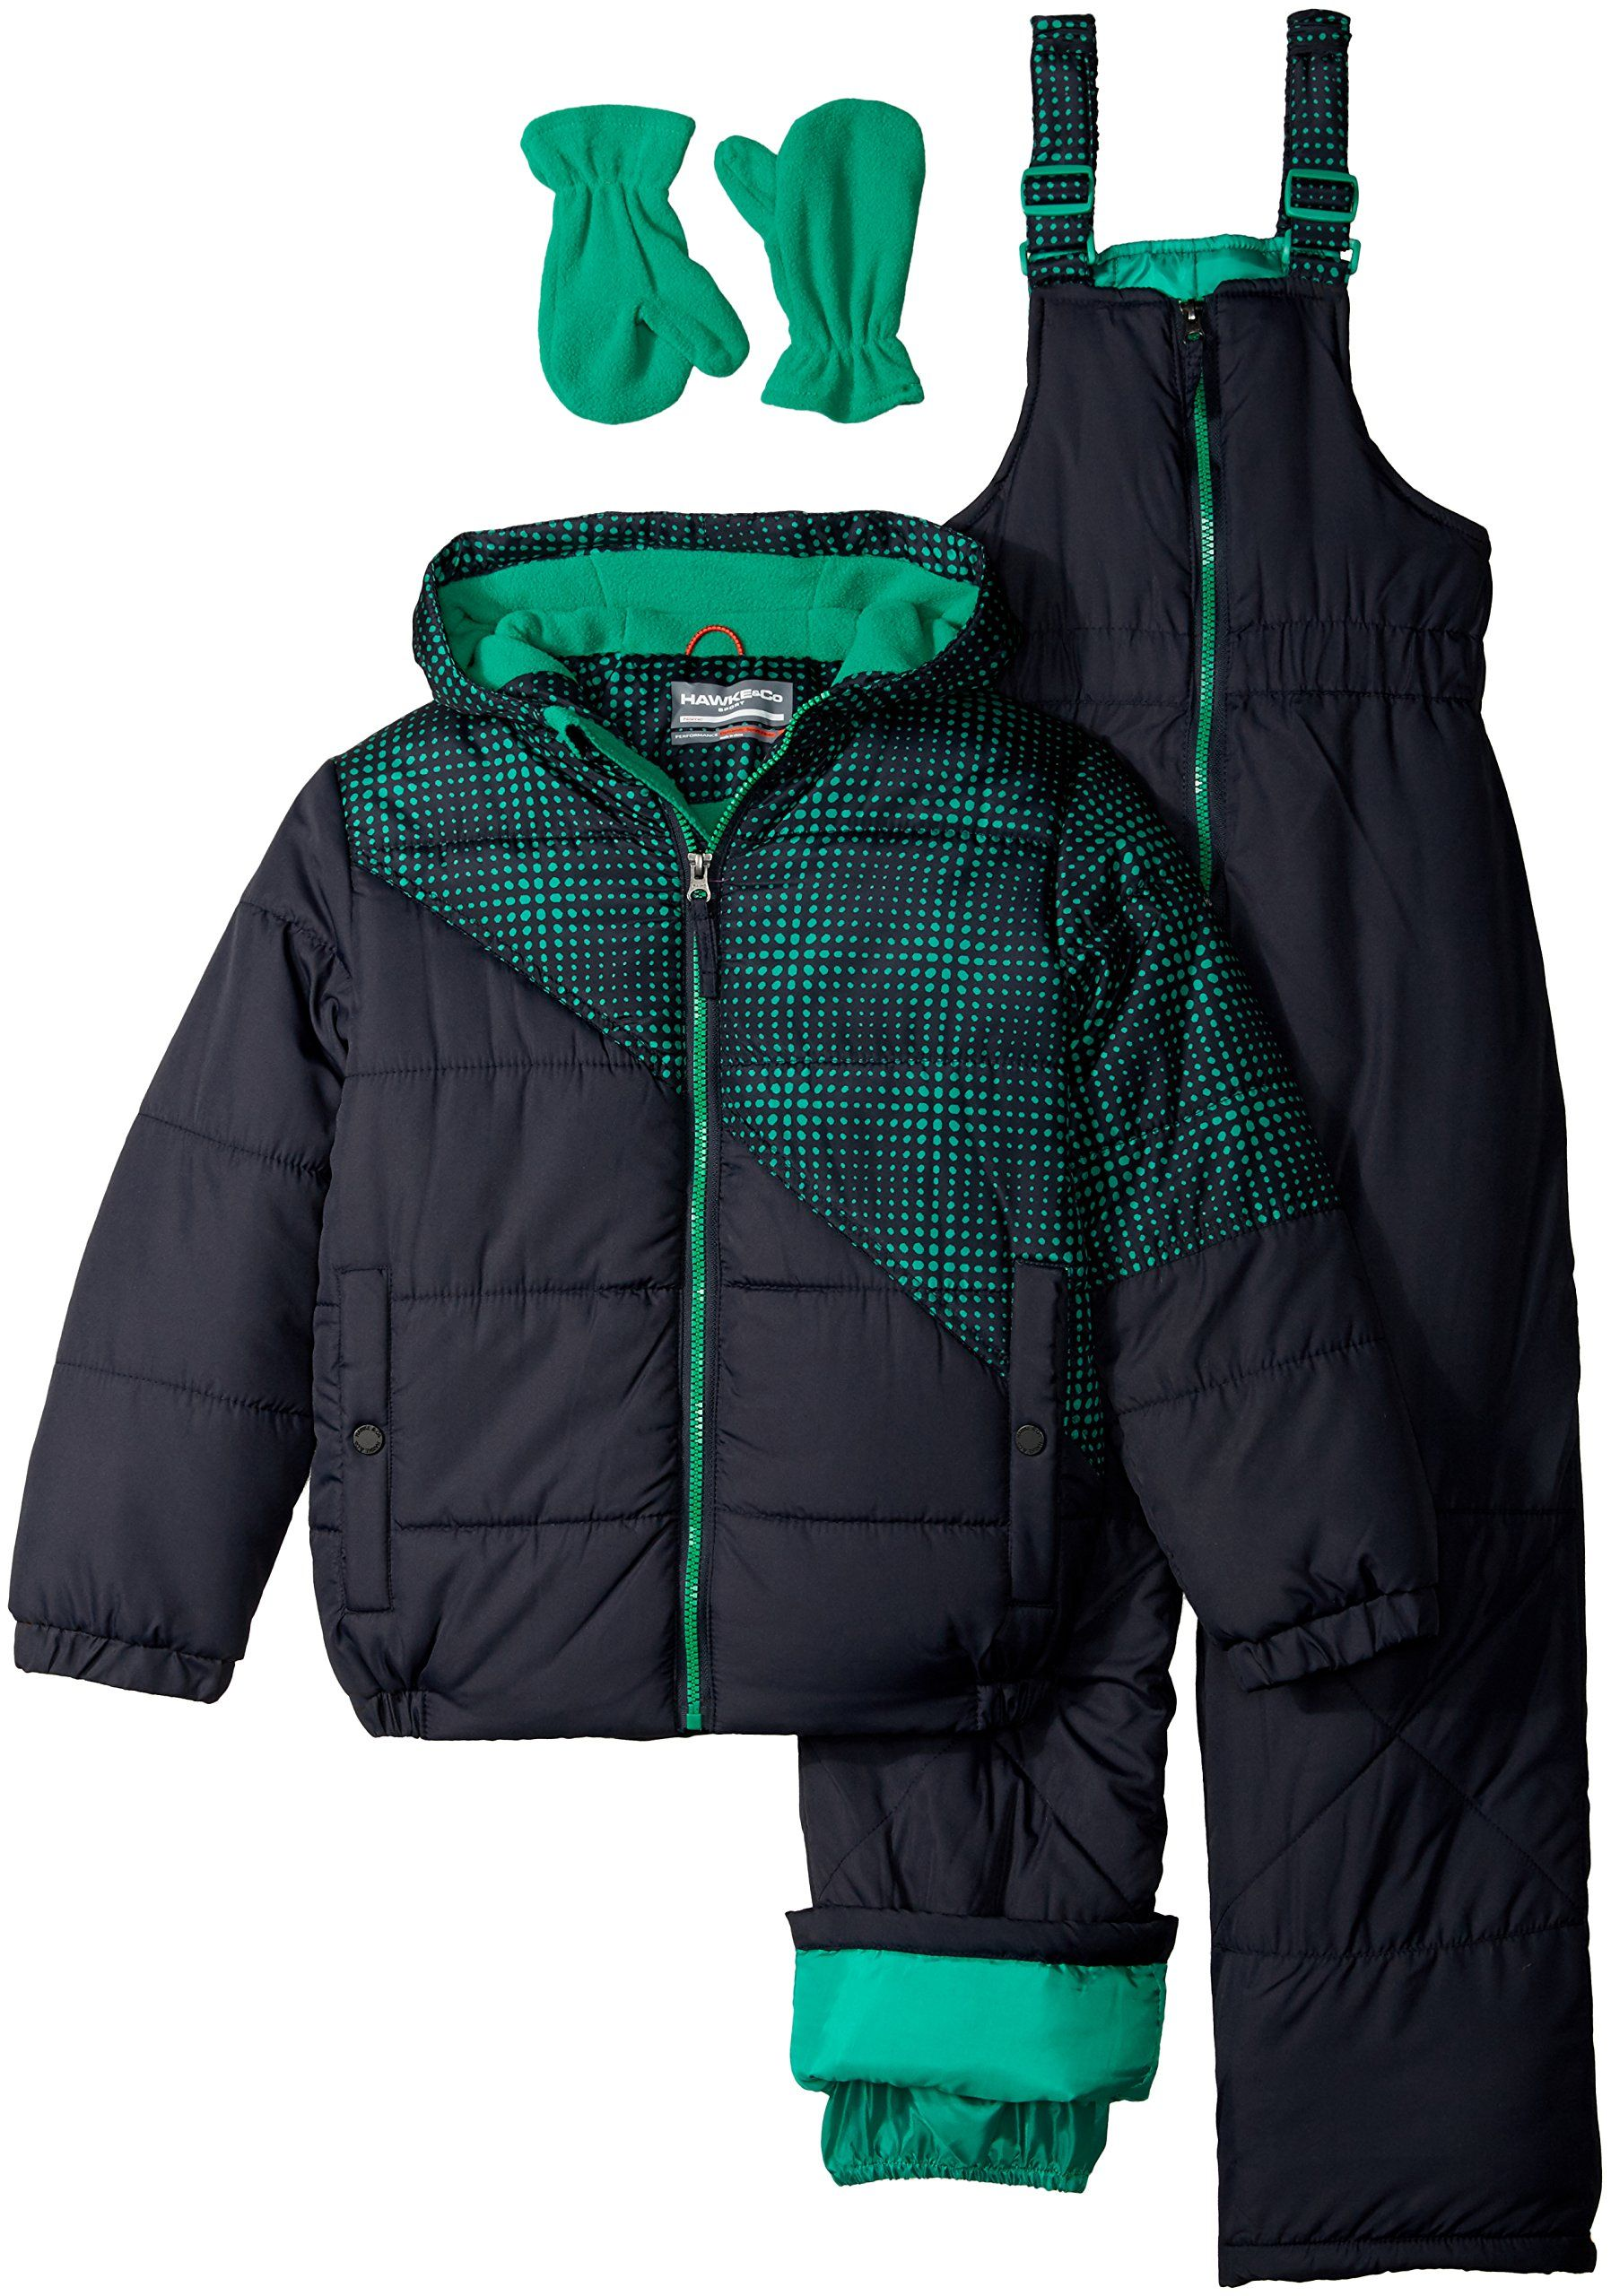 743e88bf60b6 Hawke   Co. Little Boys  Toddler 2 Piece Snow Suit with Optic Dot ...